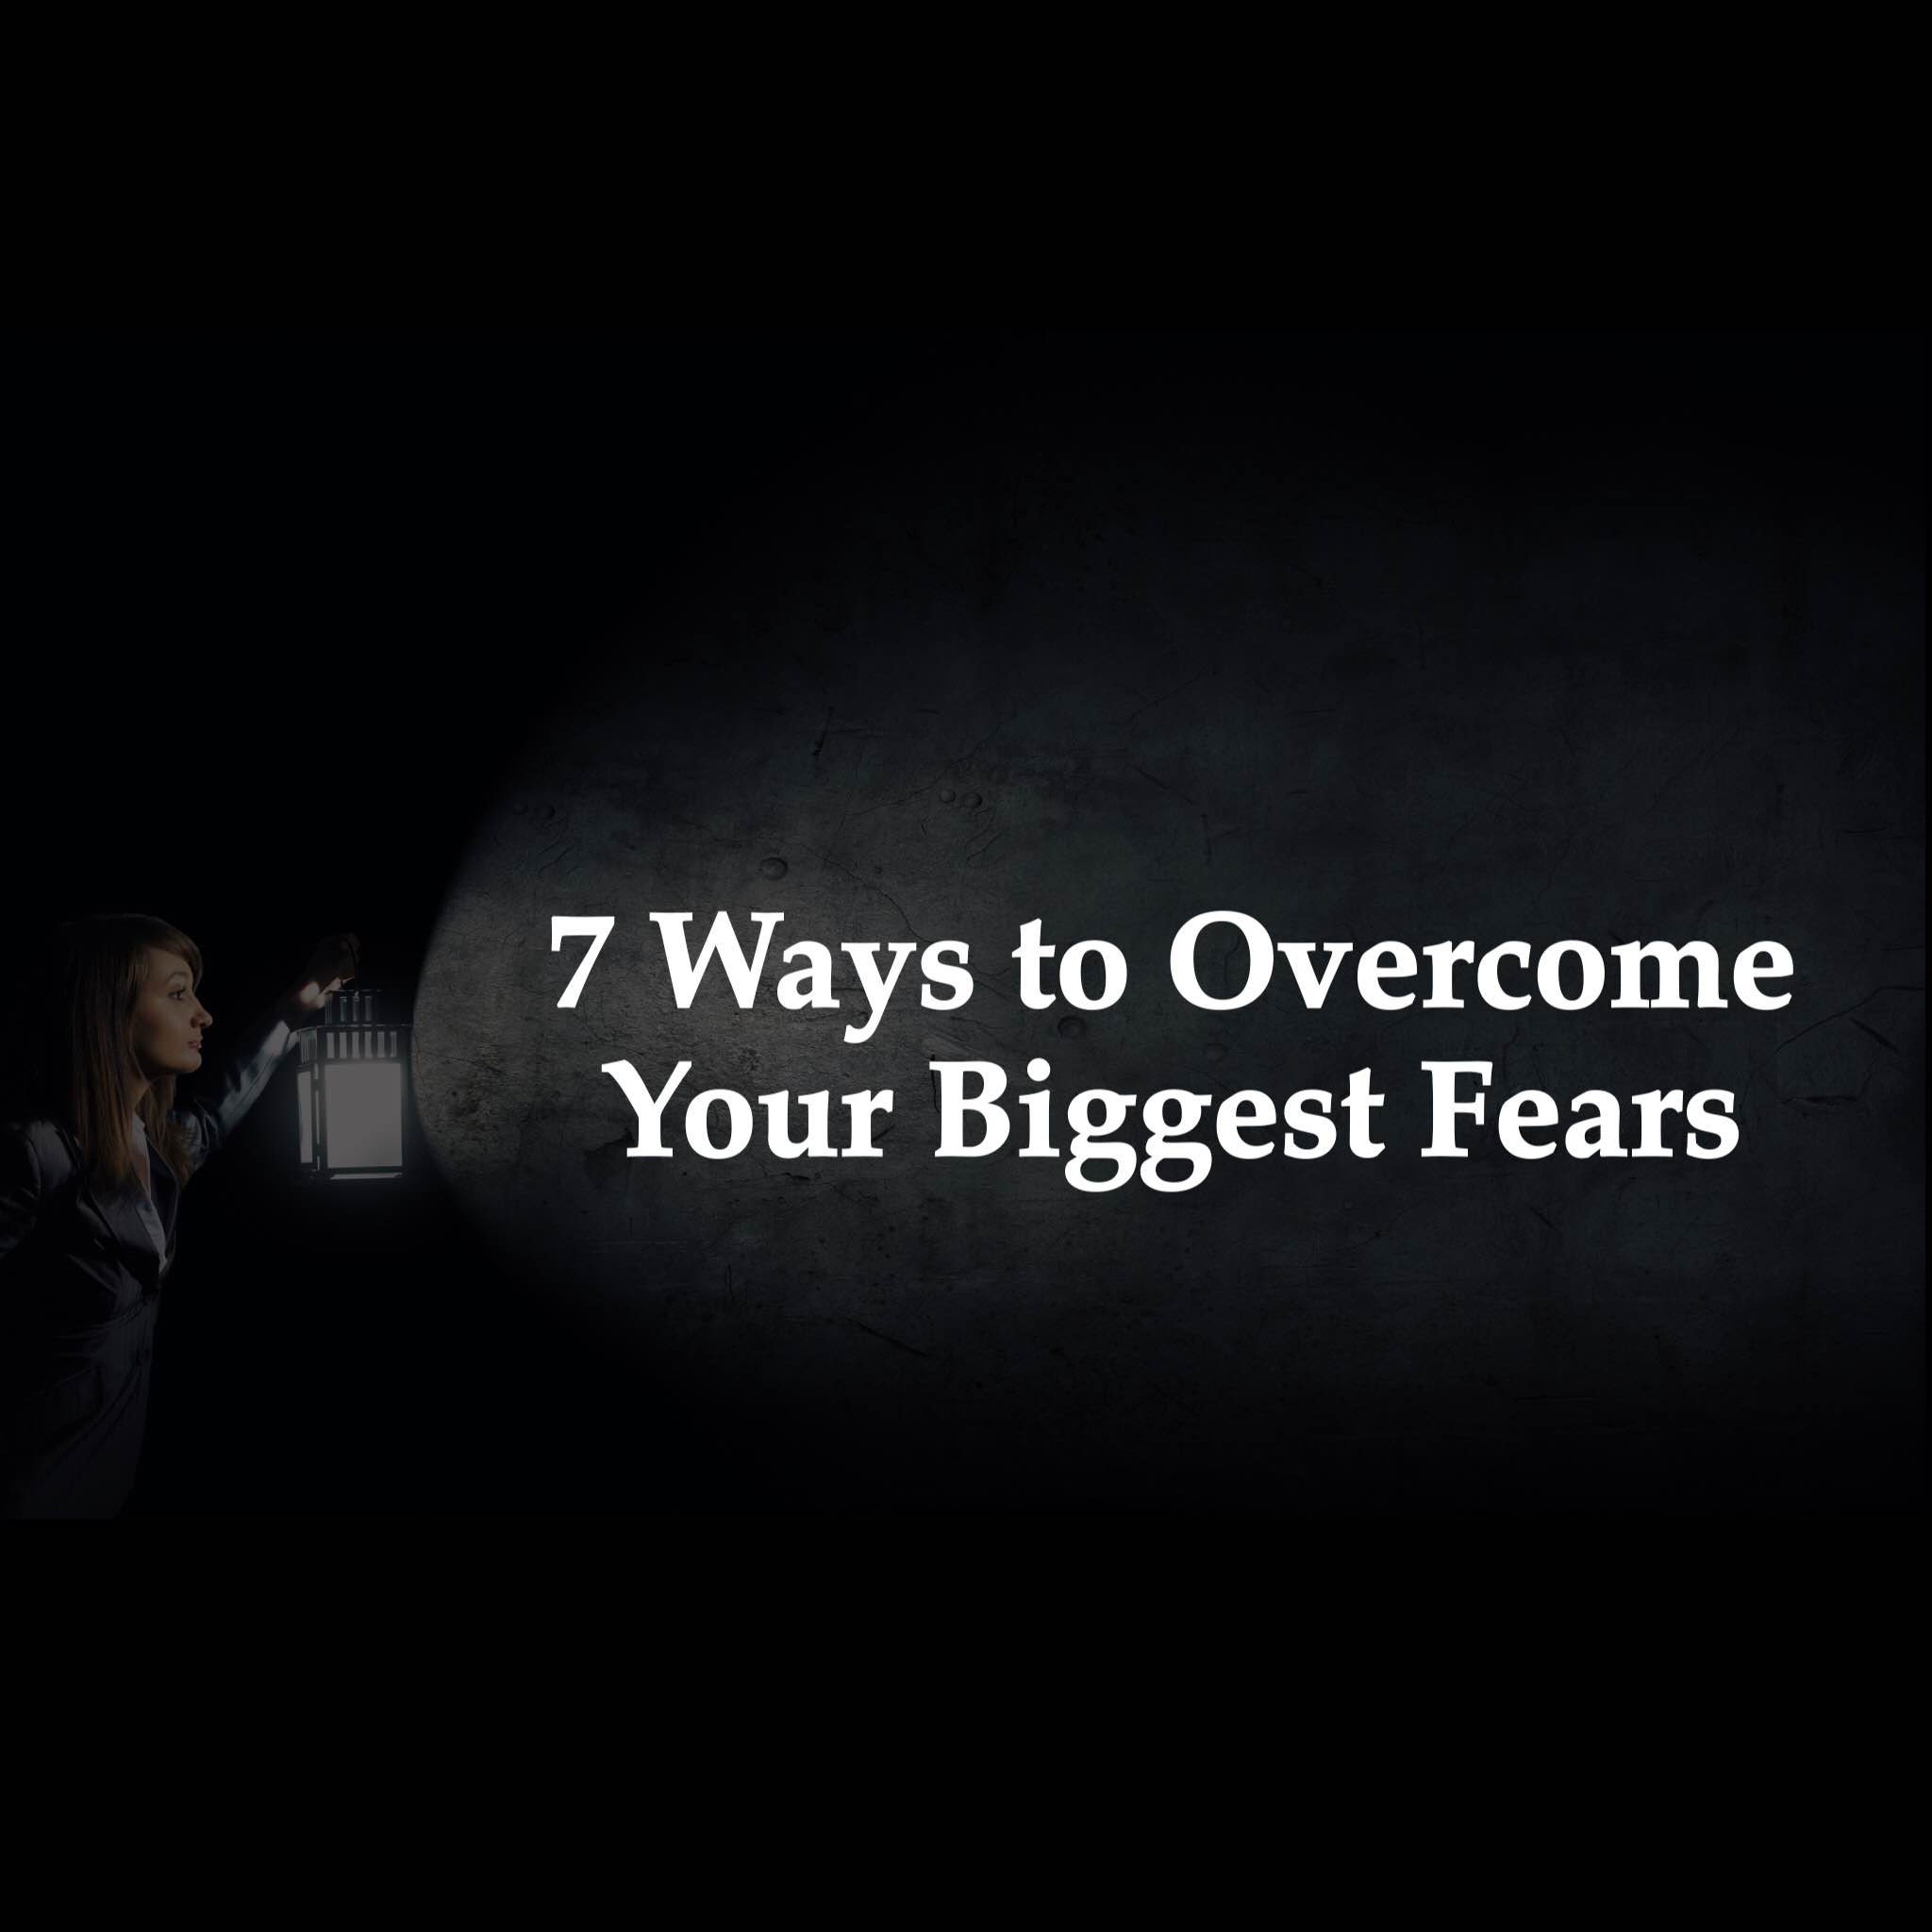 7 Ways To Overcome Your Biggest Fears